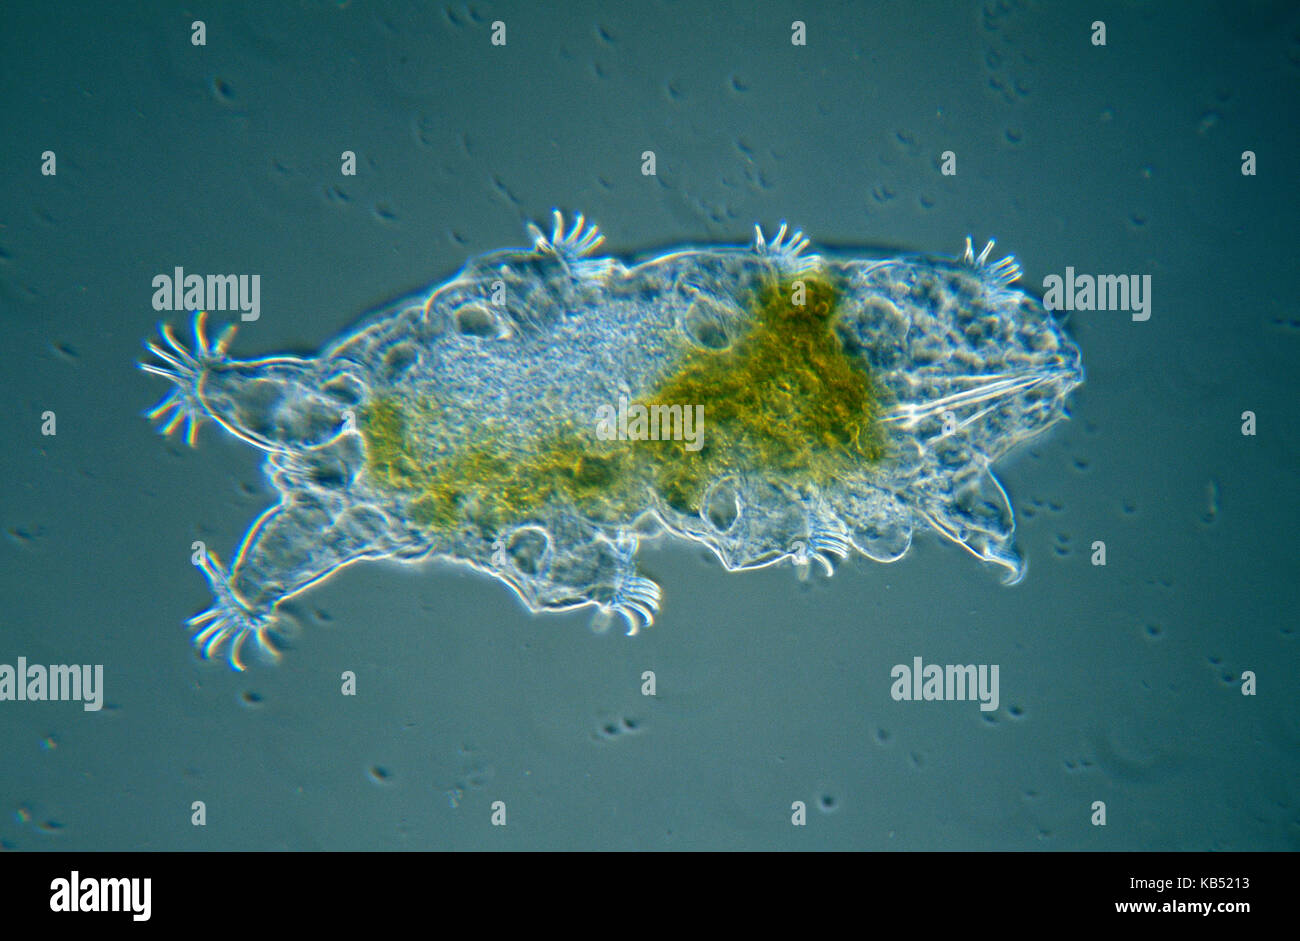 Tardigrade (Echiniscoides sigismundi) microscopic image, animal is less than one mm in length, can enter cryptobiosis - Stock Image